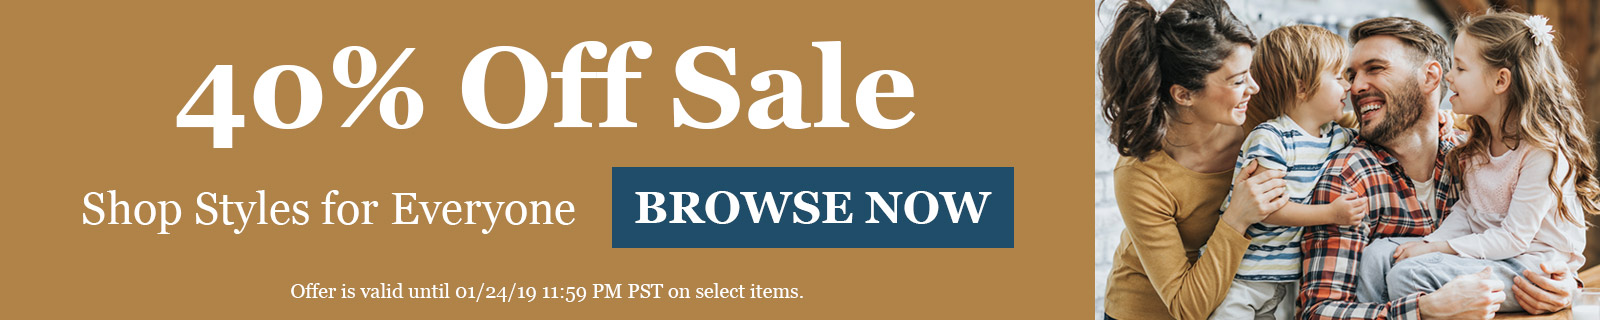 40% Off Sale Shop Styles for Everyone BROWSE NOW